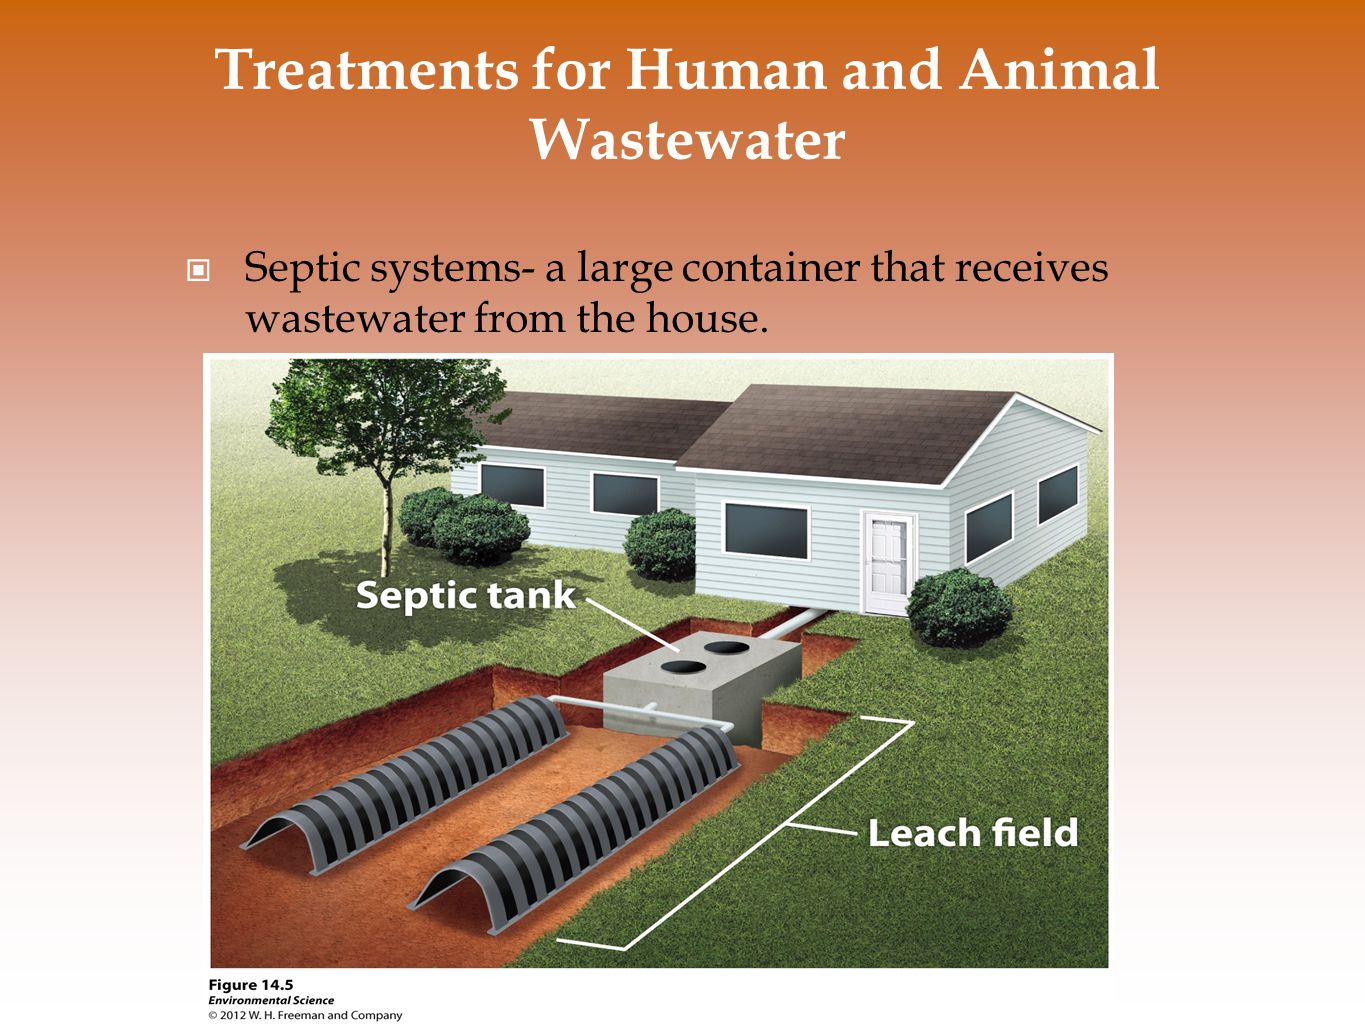 Treatments for Human and Animal Wastewater